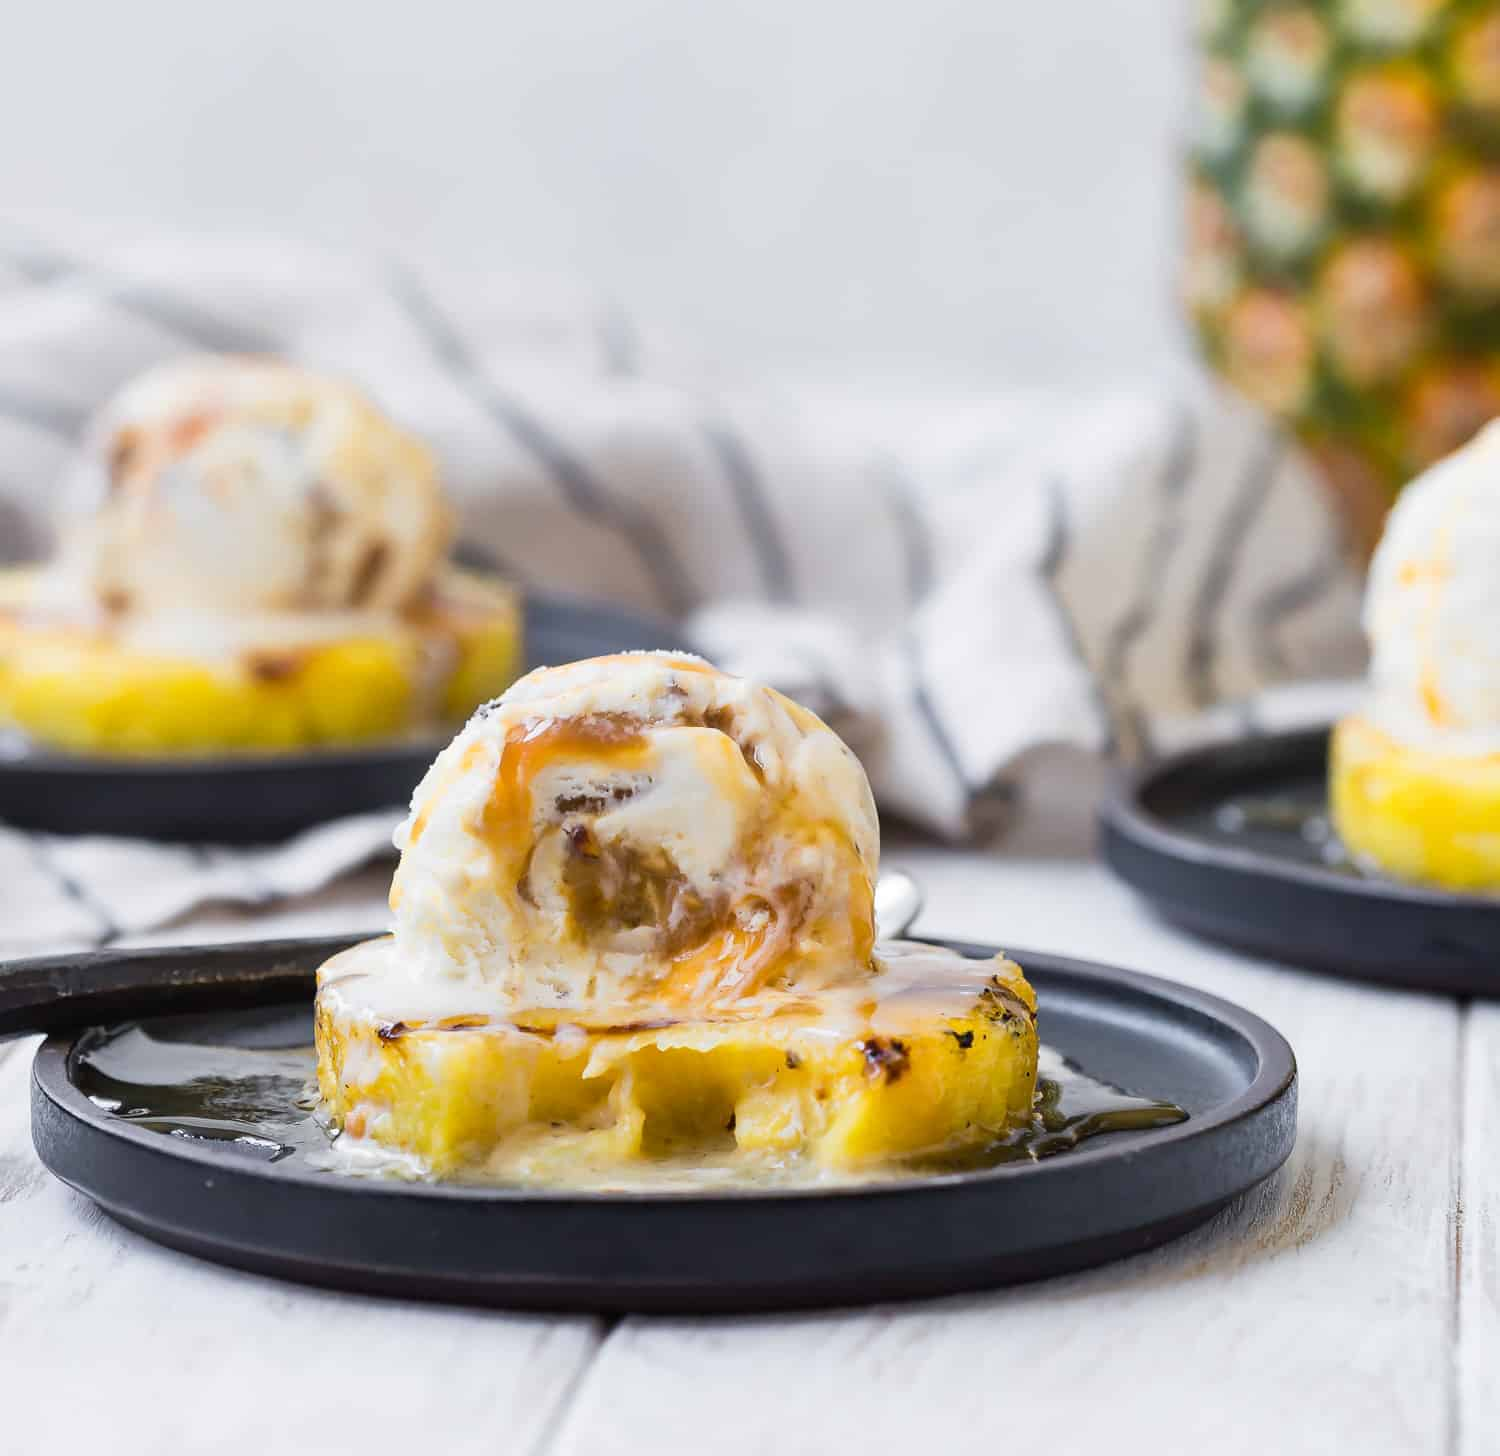 Pineapple and ice cream with a bite out of it to show caramel in ice cream.